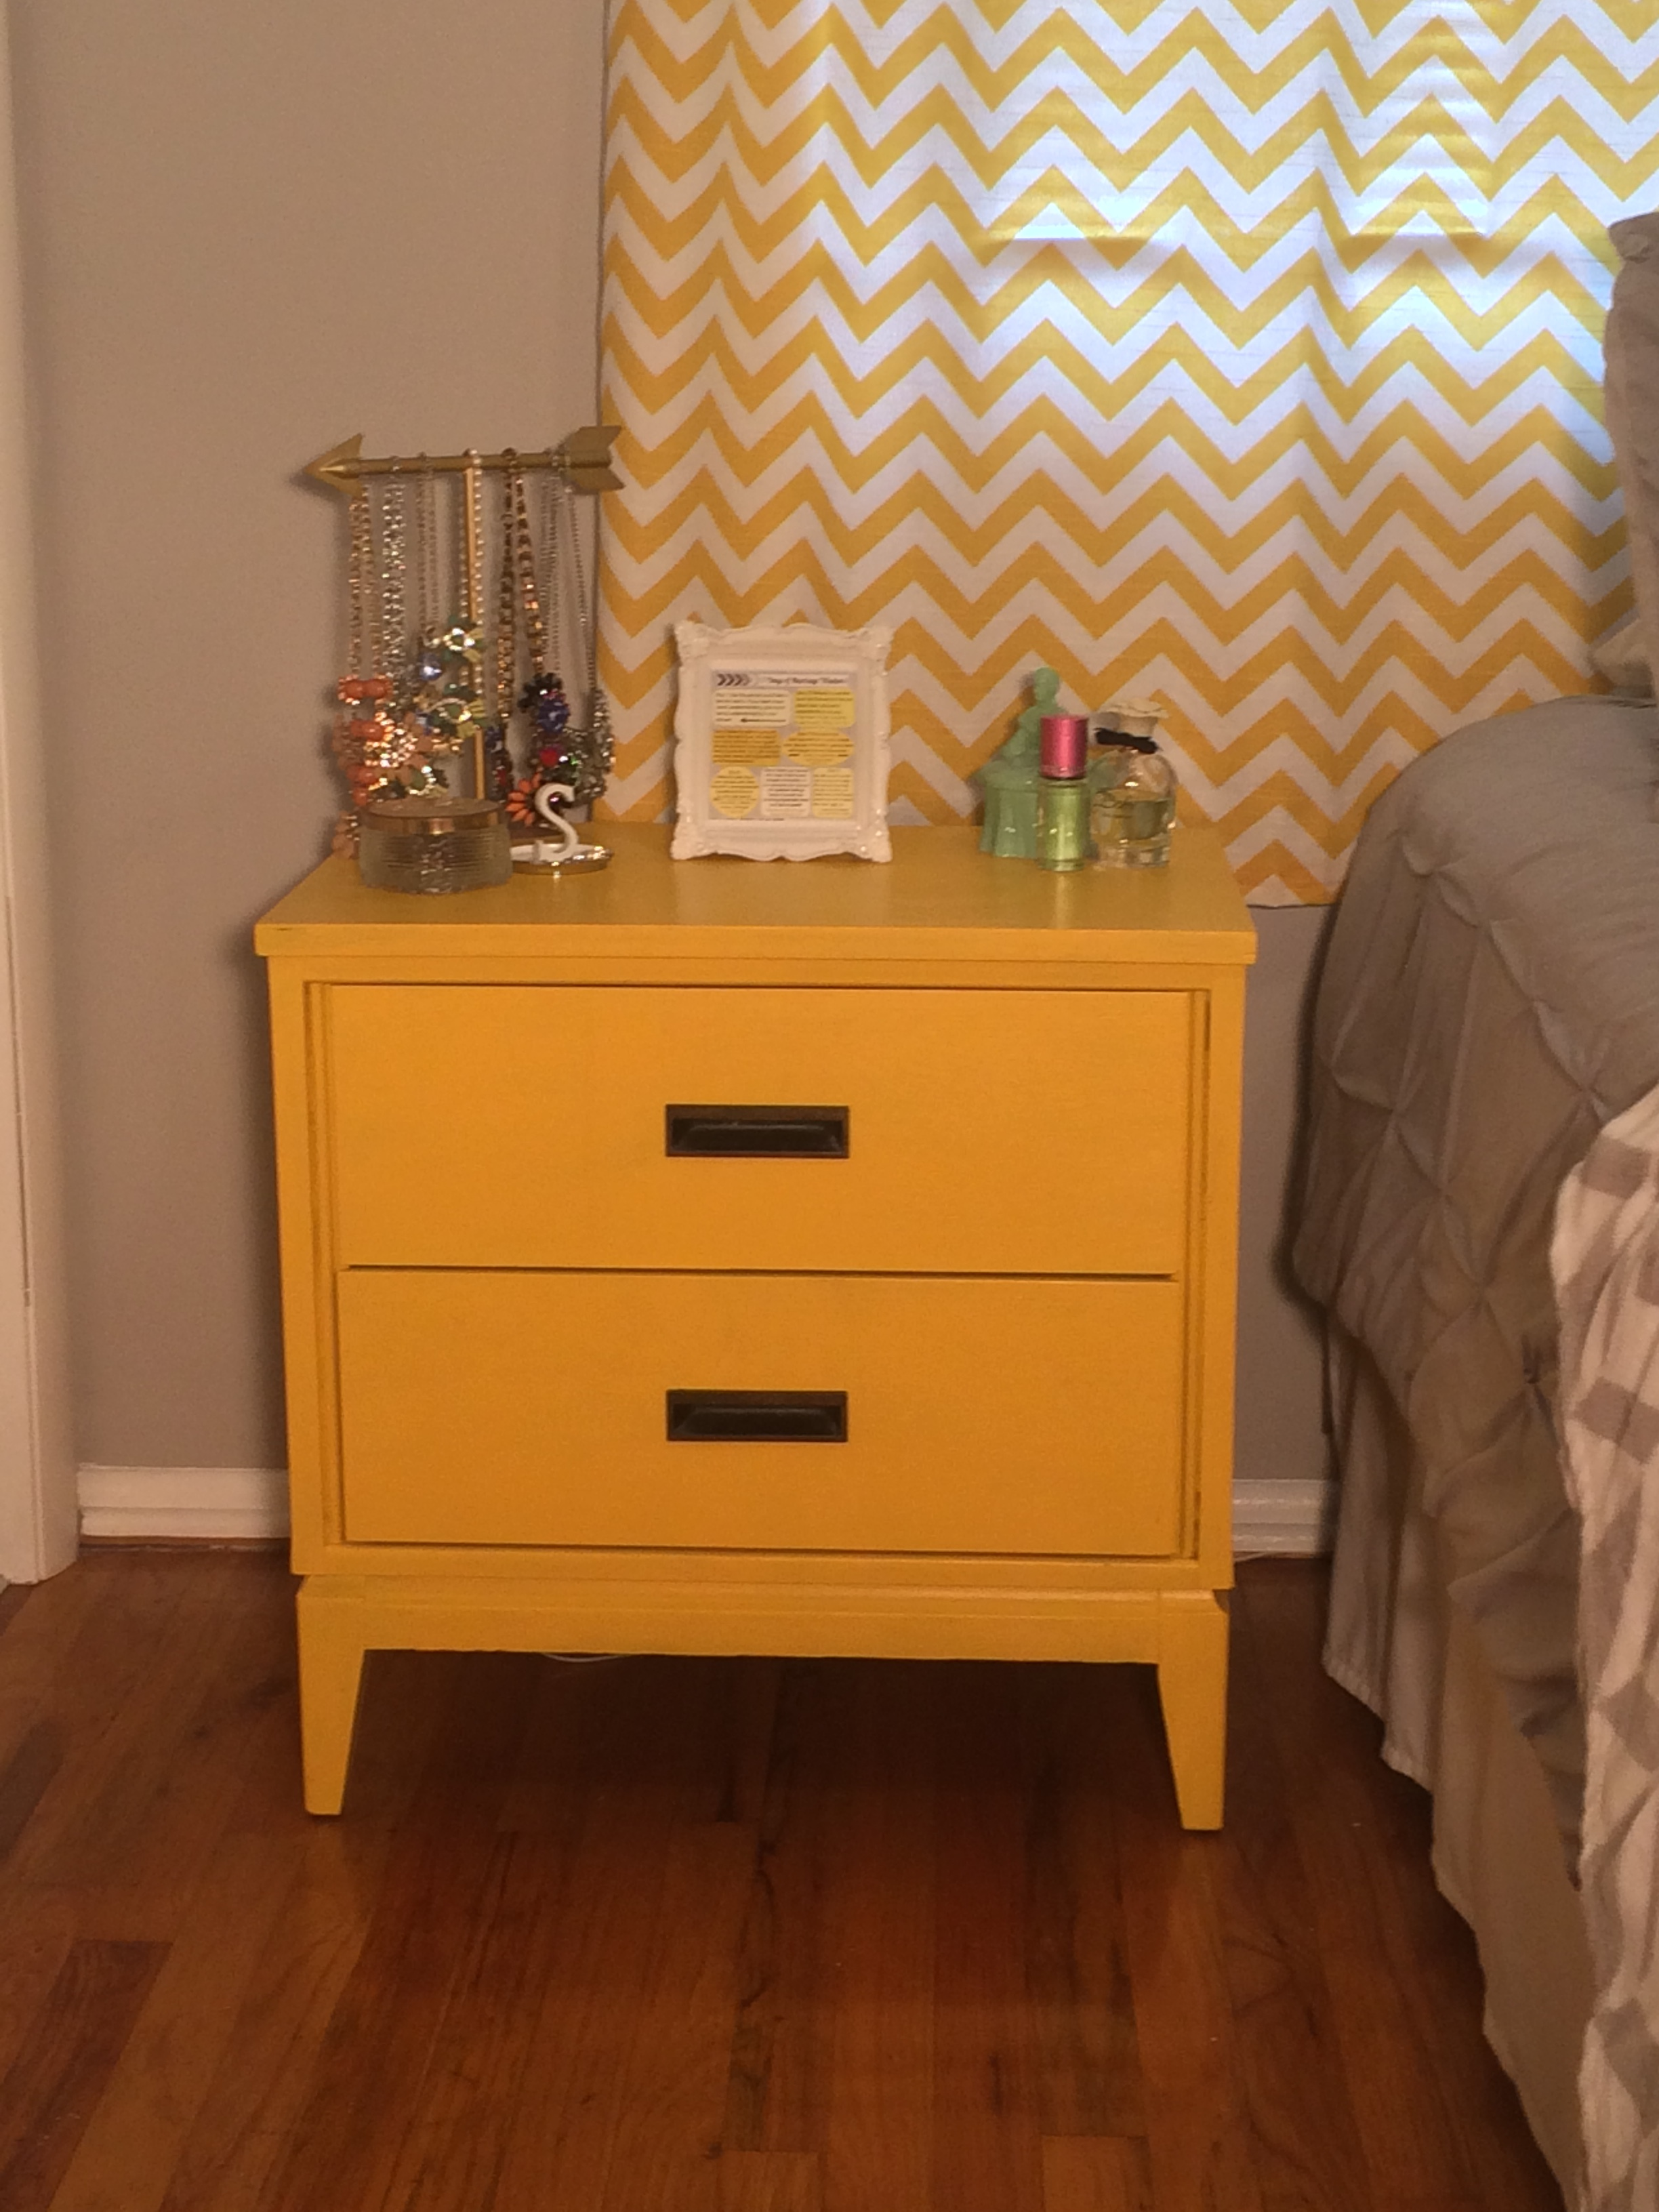 Thrift Store Night Stand Painted Yellow.JPG